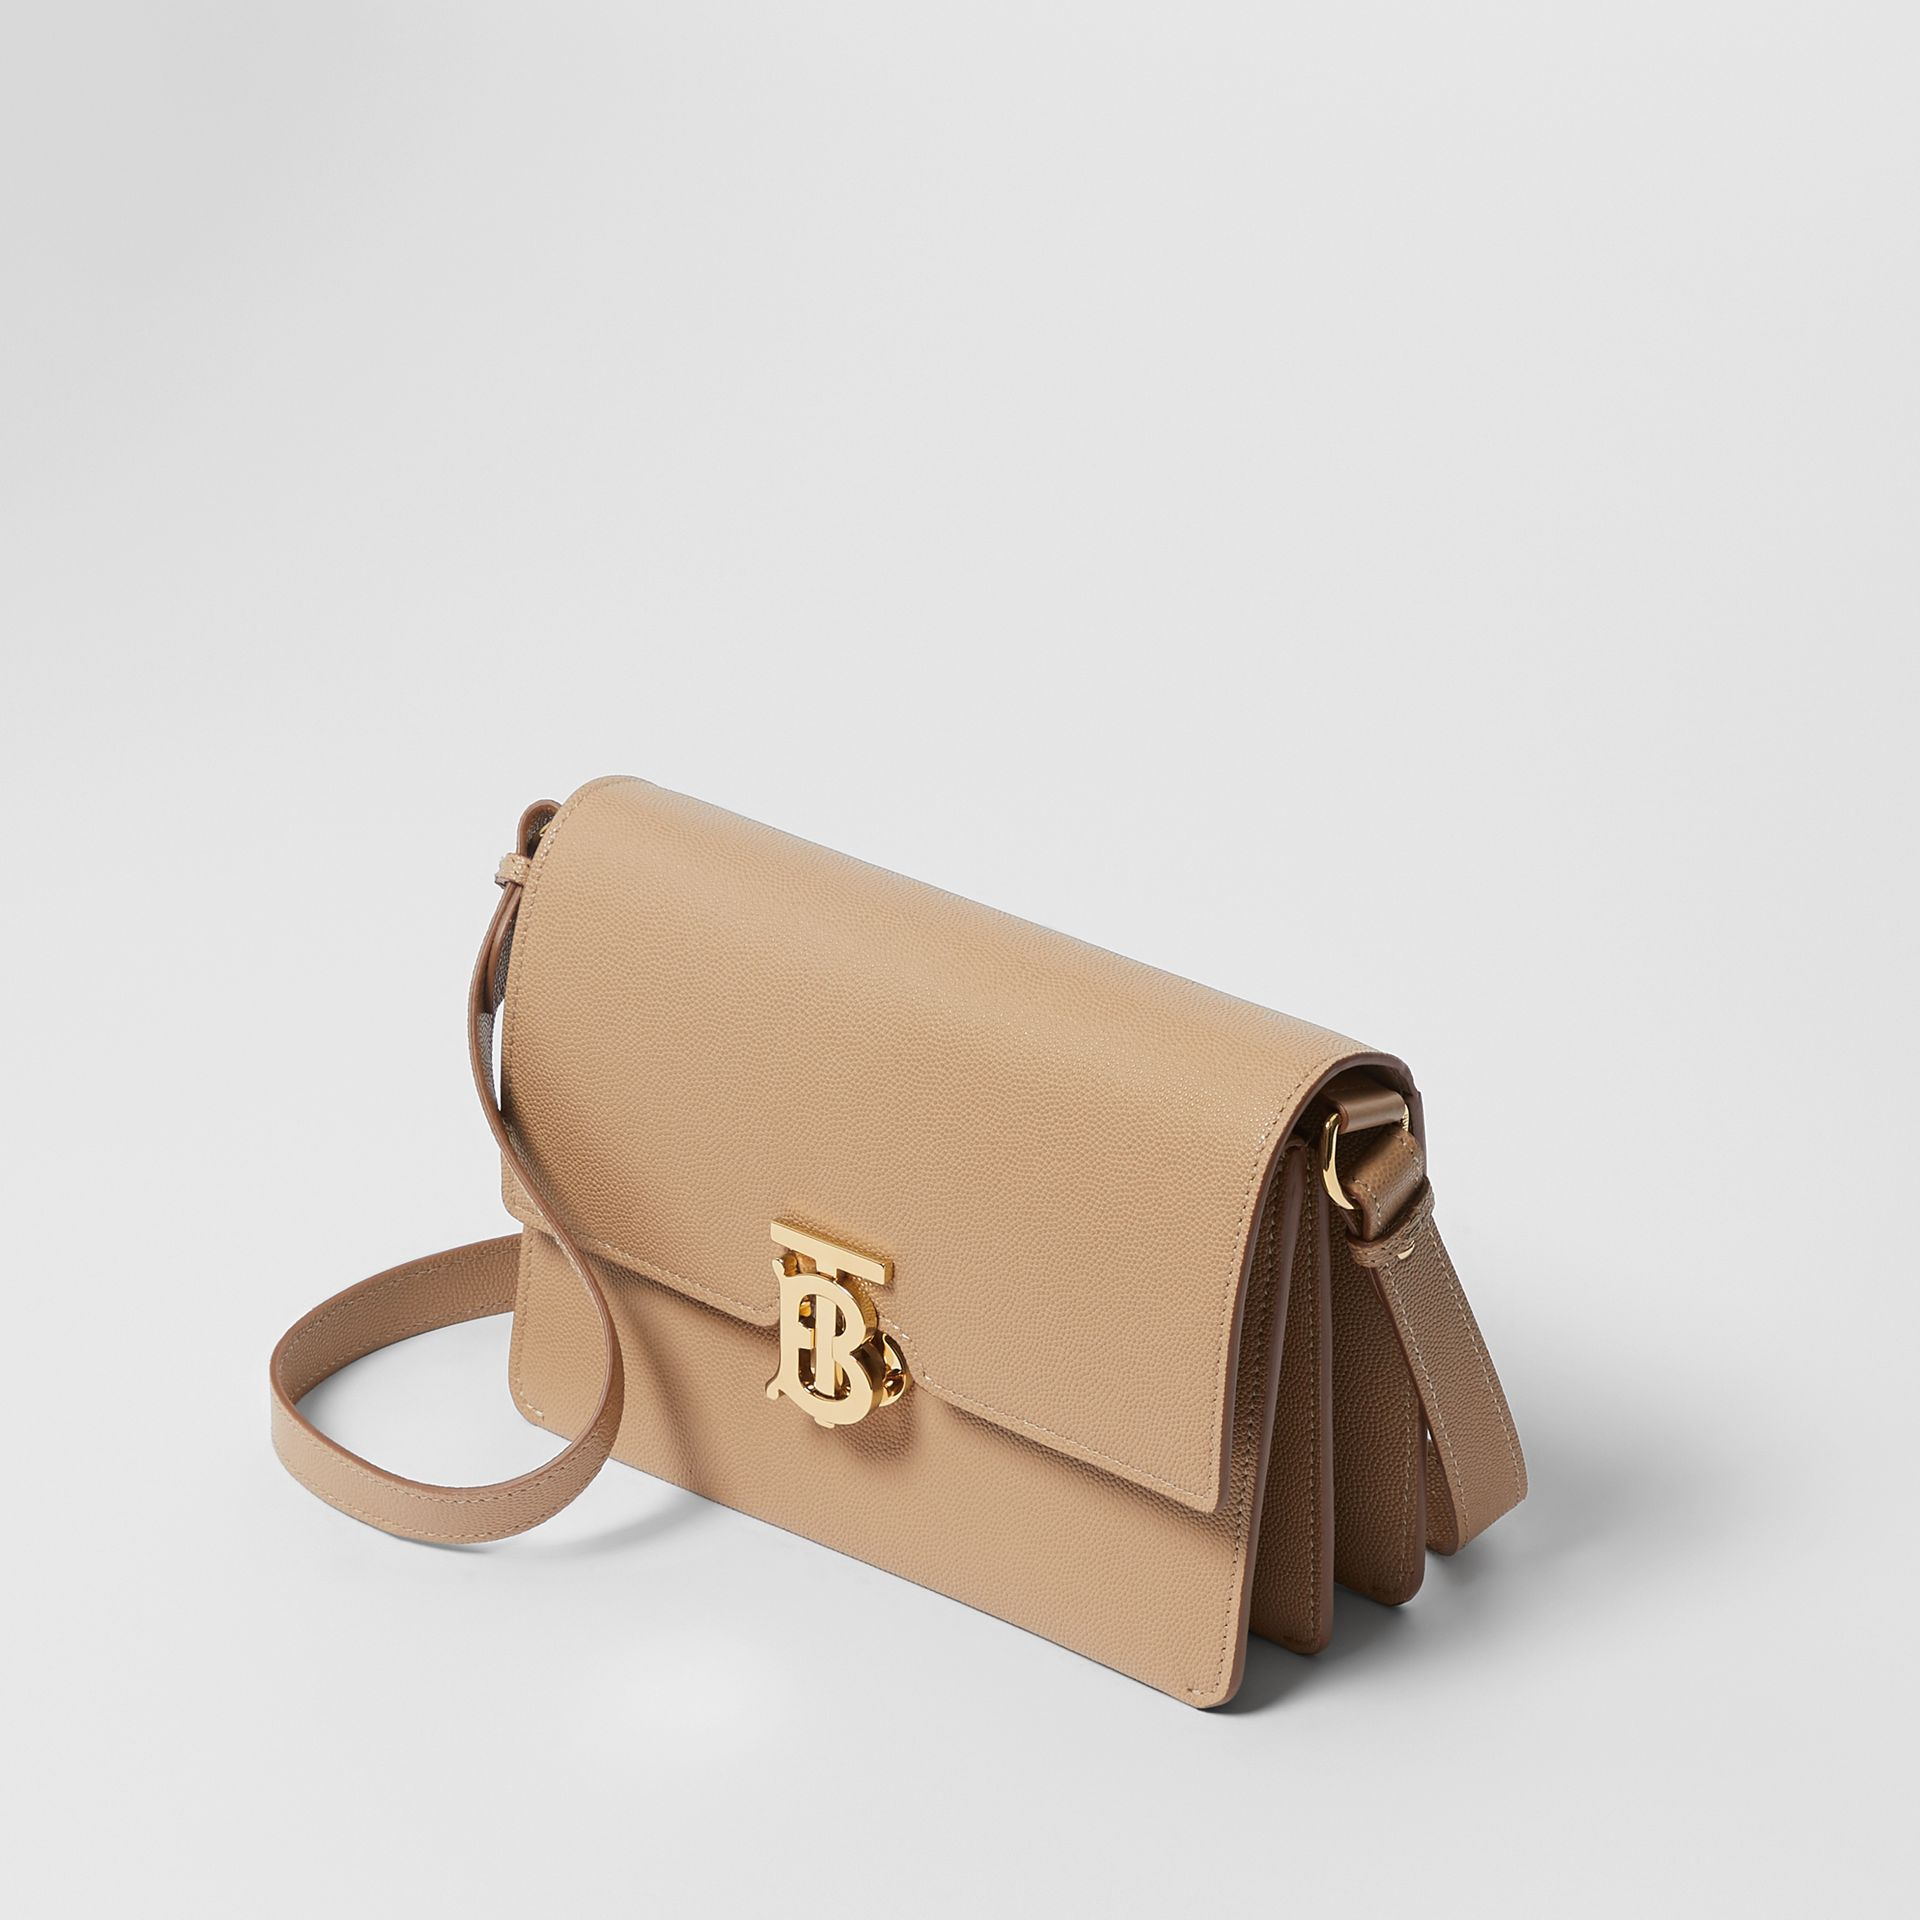 Small Monogram Motif Leather Crossbody Bag in Archive Beige - Women | Burberry Hong Kong S.A.R - gallery image 2